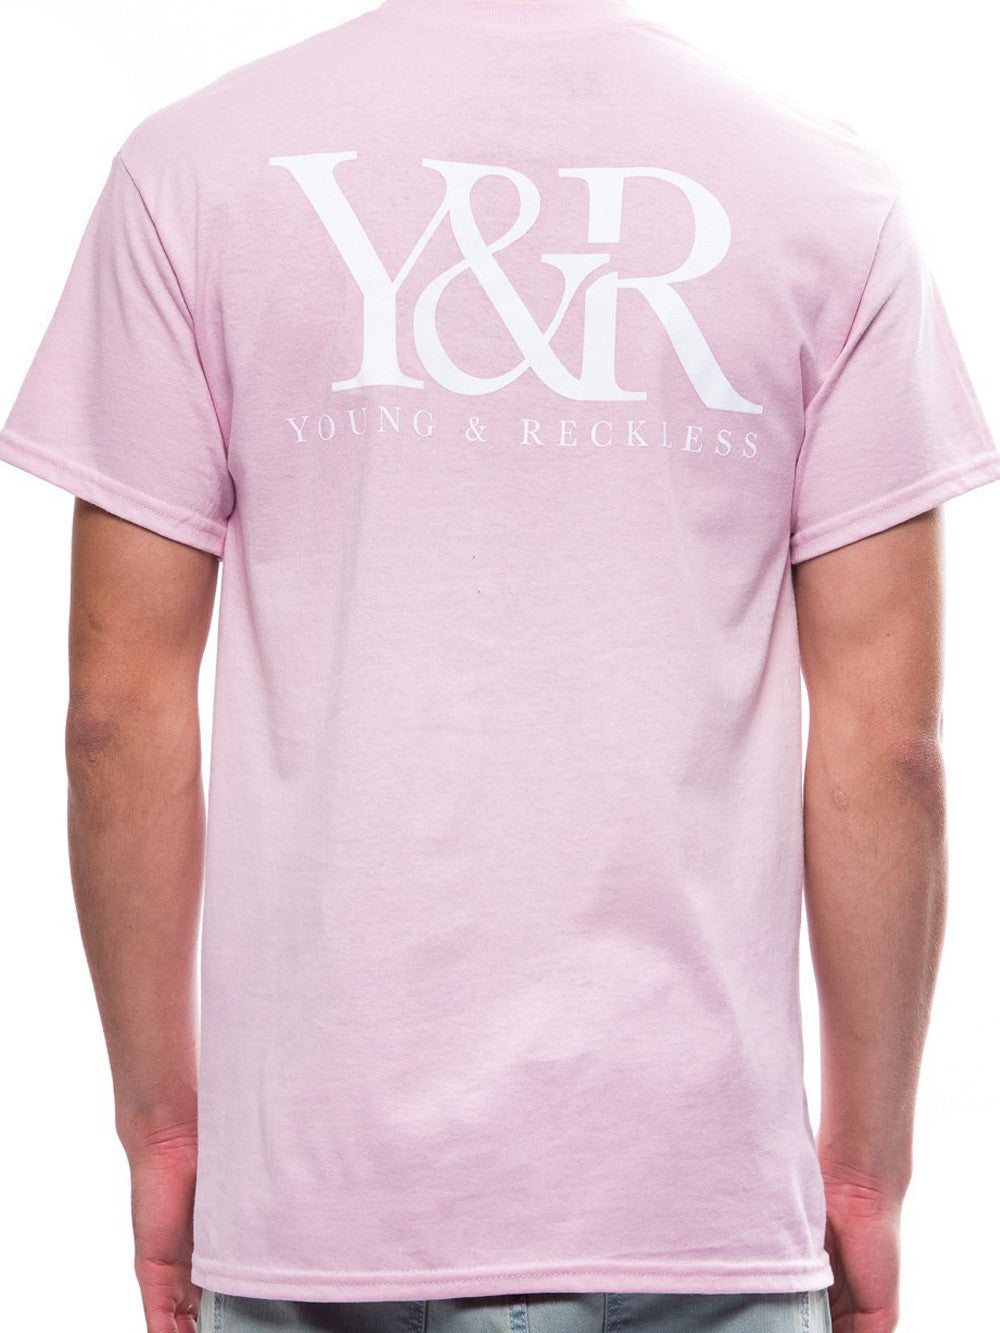 Young and Reckless Mens - Tees - Graphic Tee Straight Up Tee- Pink